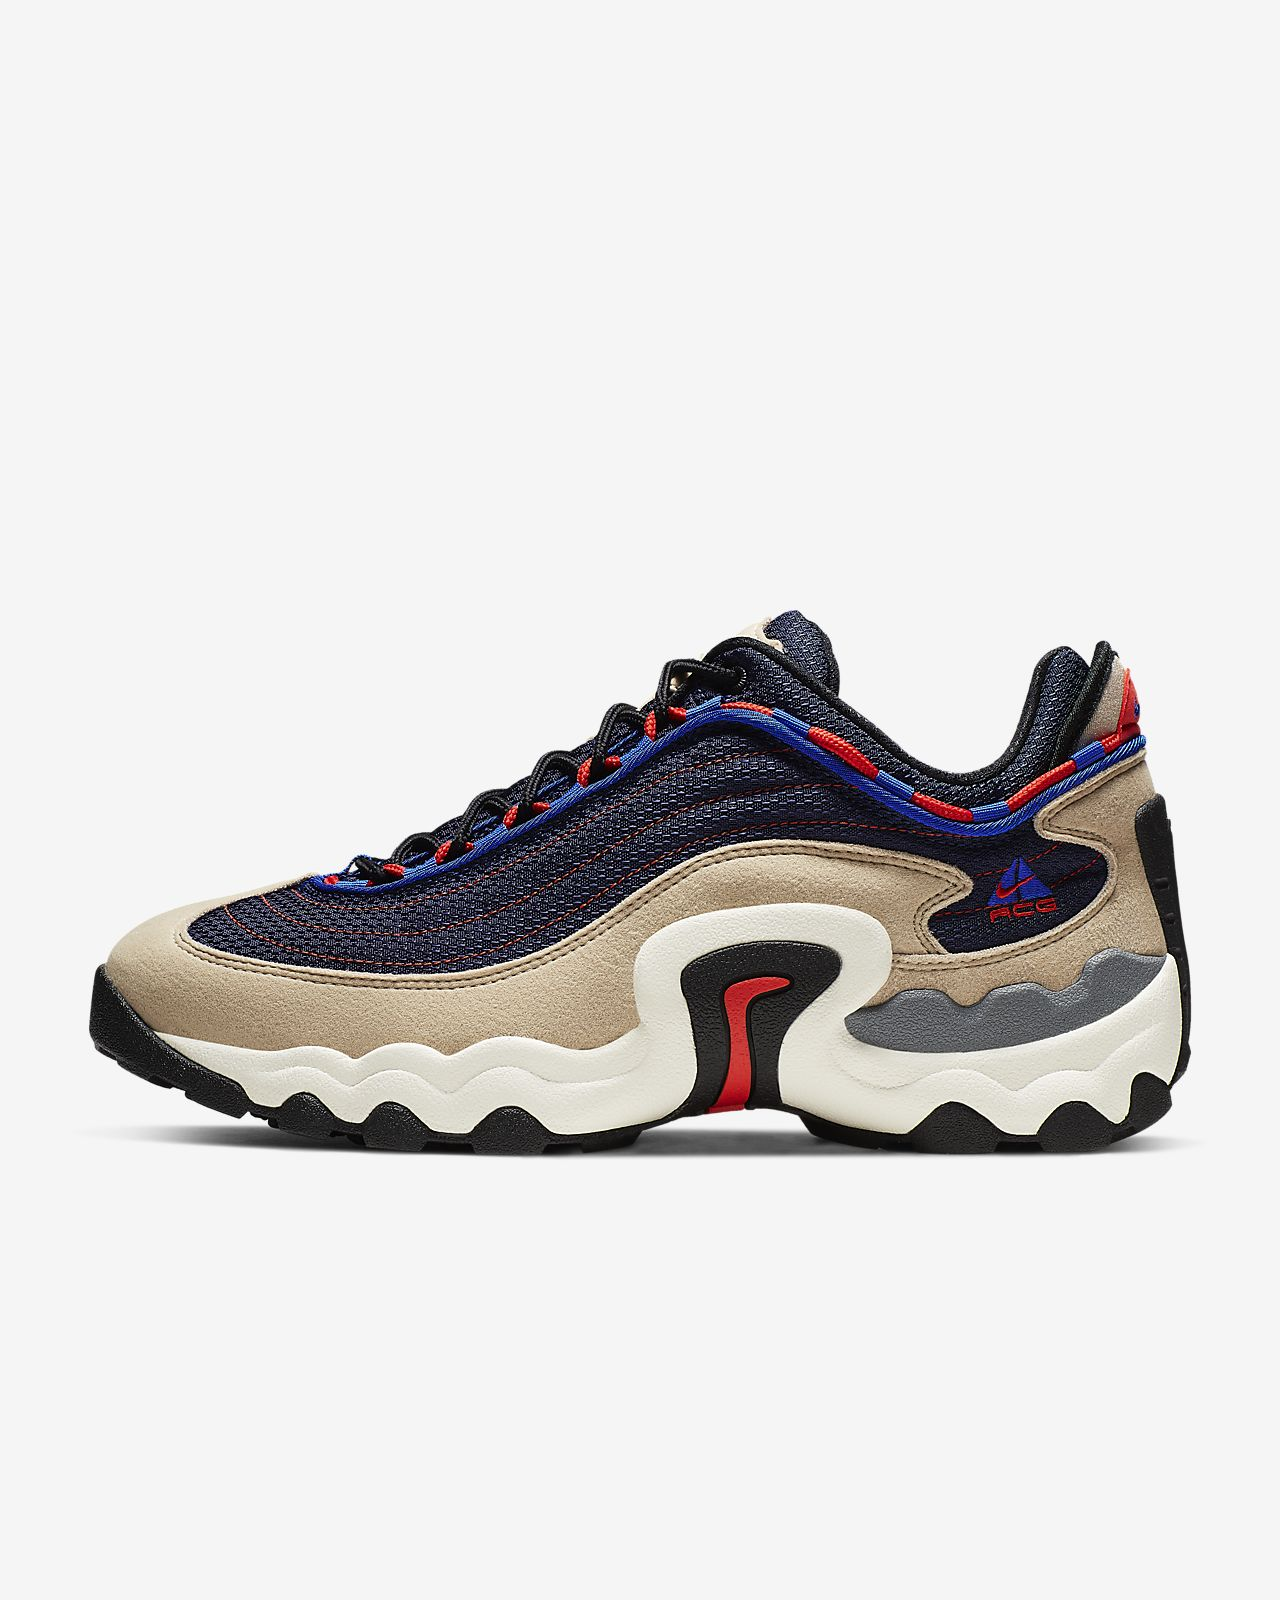 Nike Air Skarn Herrenschuh